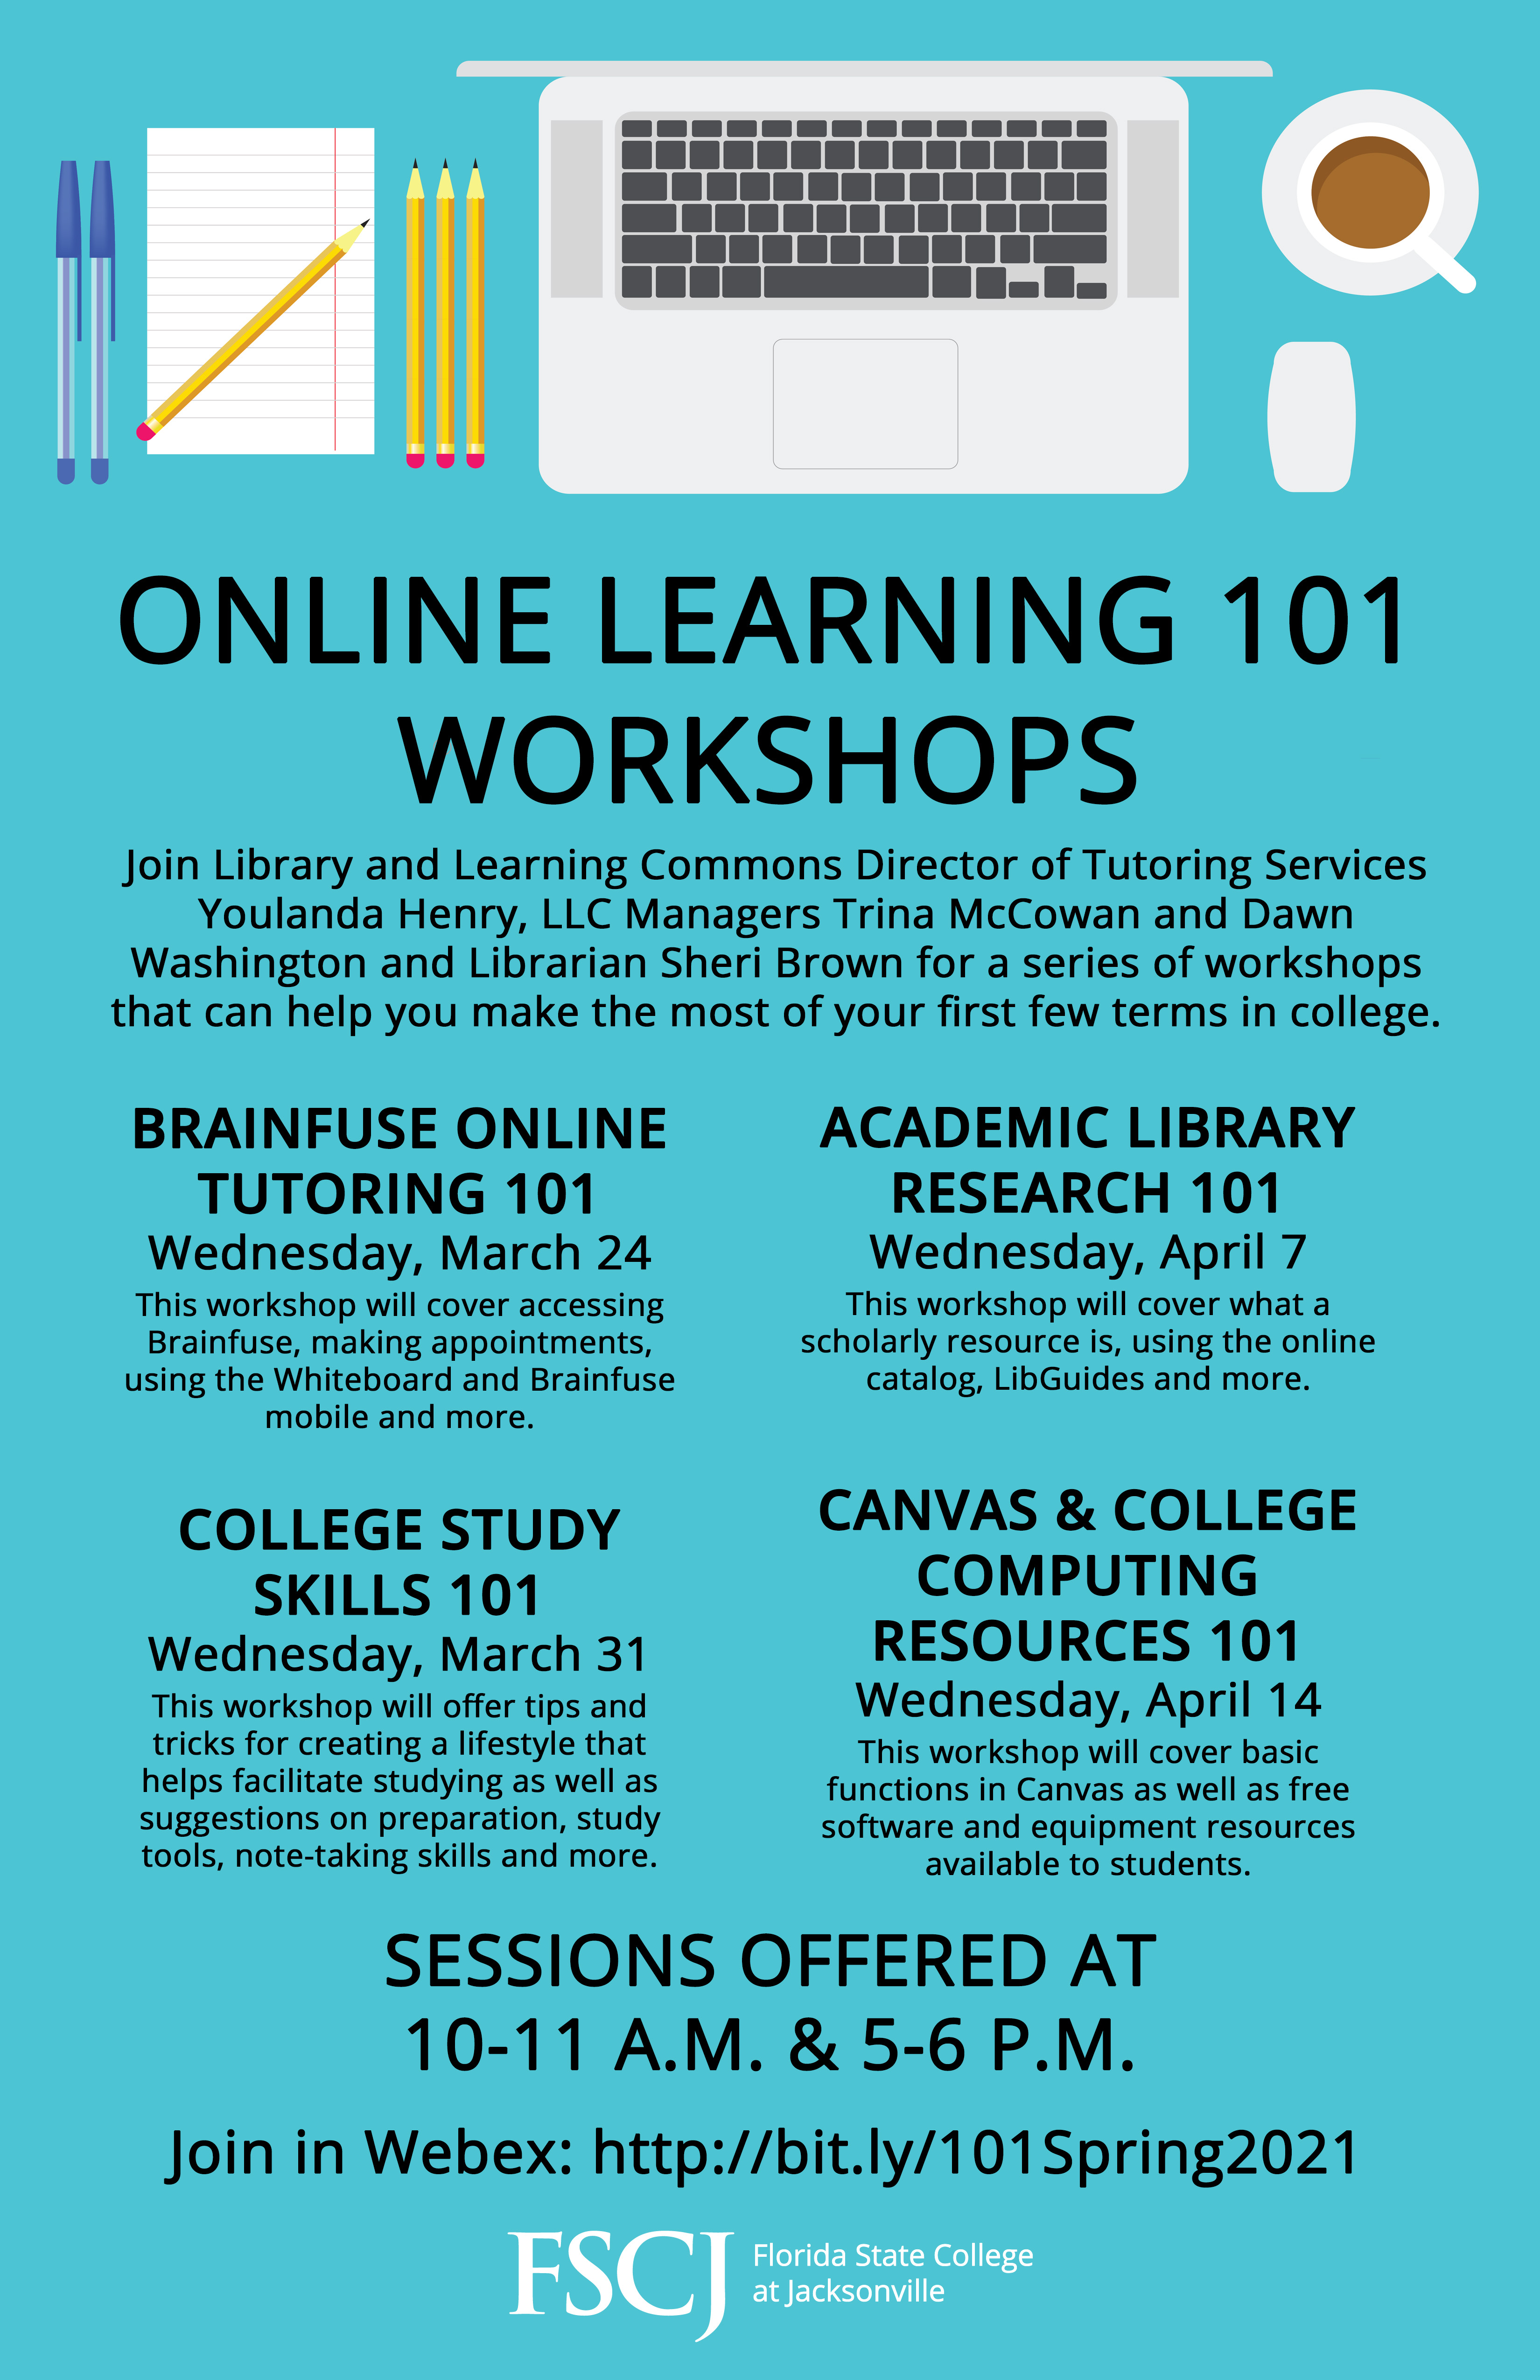 Online Learning 101 Workshops: Canvas & College Computing Resources 101